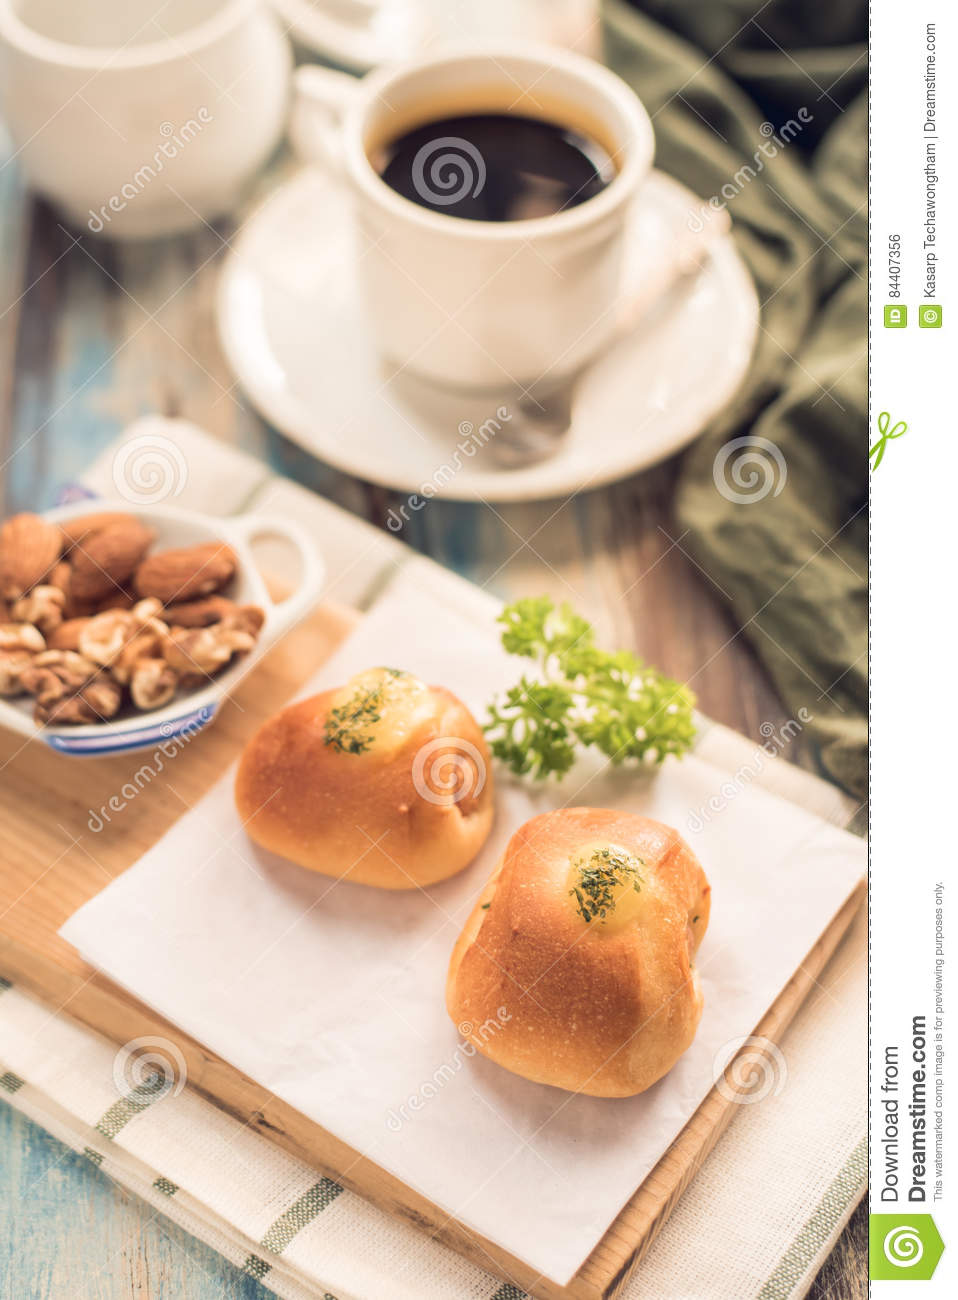 Delicious breakfast. Served with bread, Sausage Rolls black coffee and nut, on Wooden table. Top view. View from above. Selective